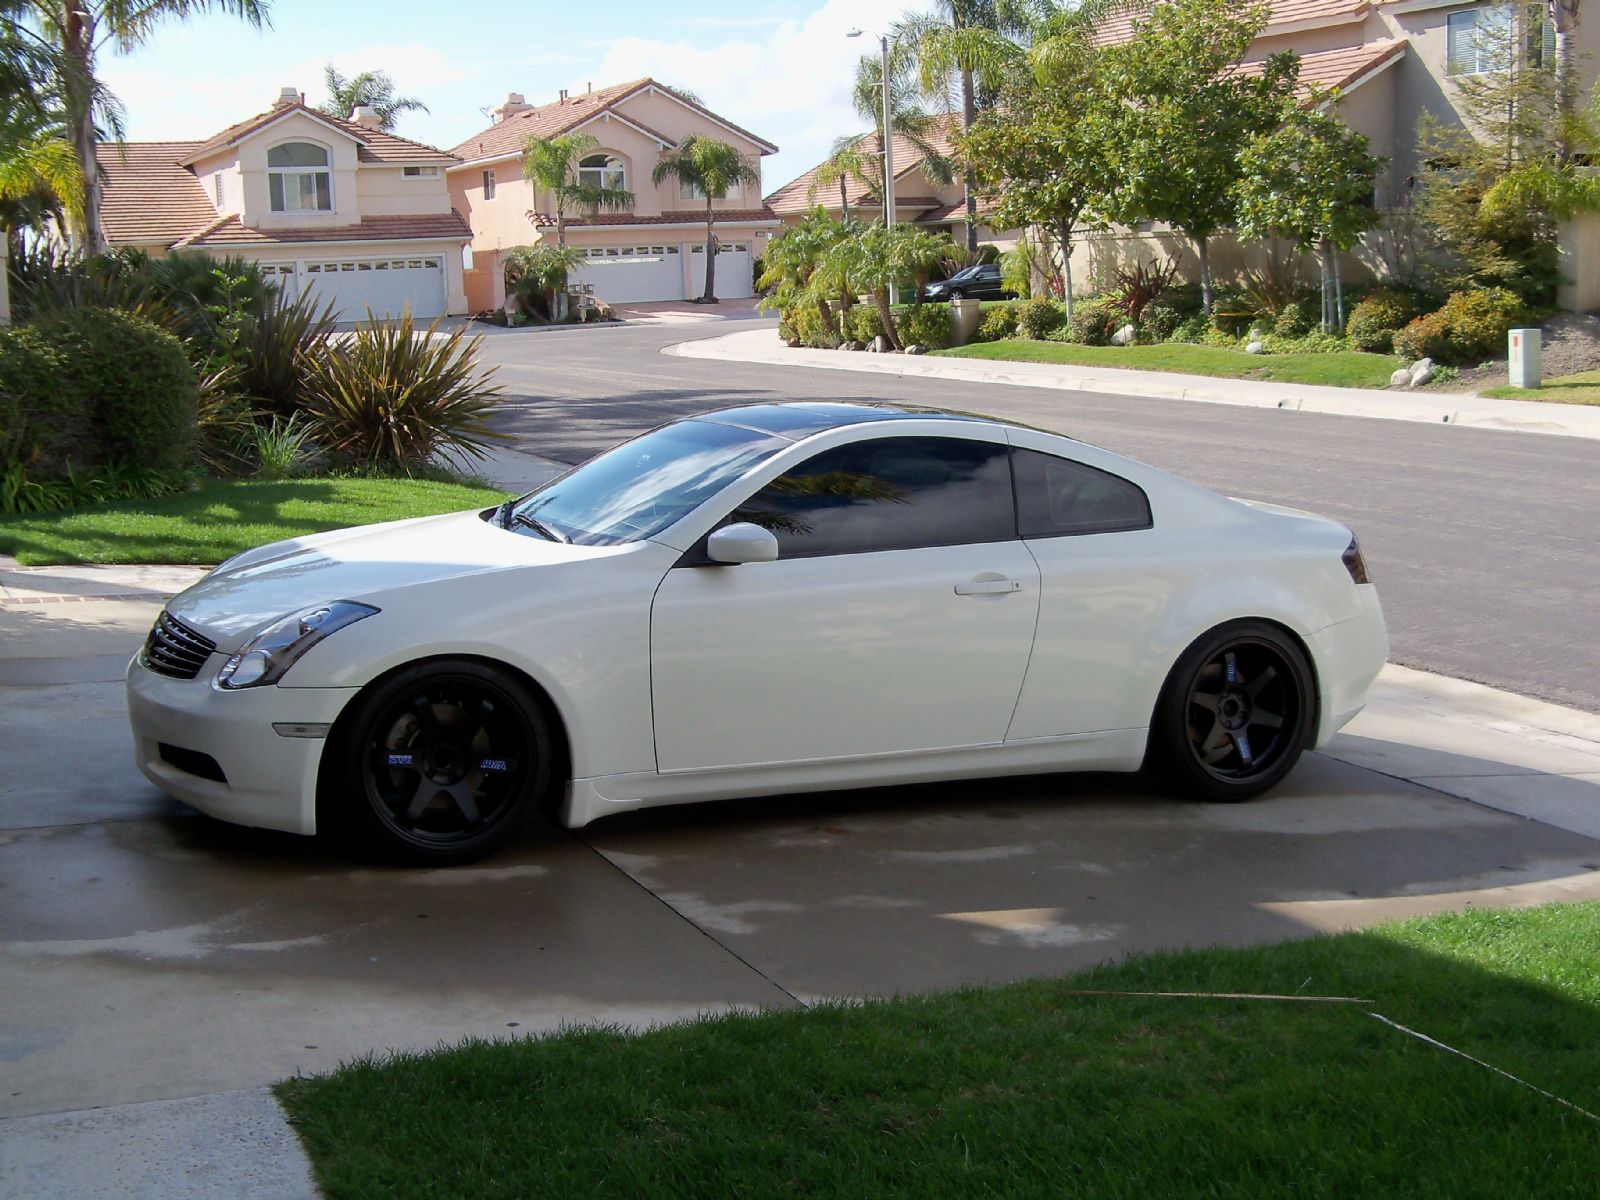 infinity g35 image custome 2005 infiniti g35 for sale lake forest california [ 1600 x 1200 Pixel ]